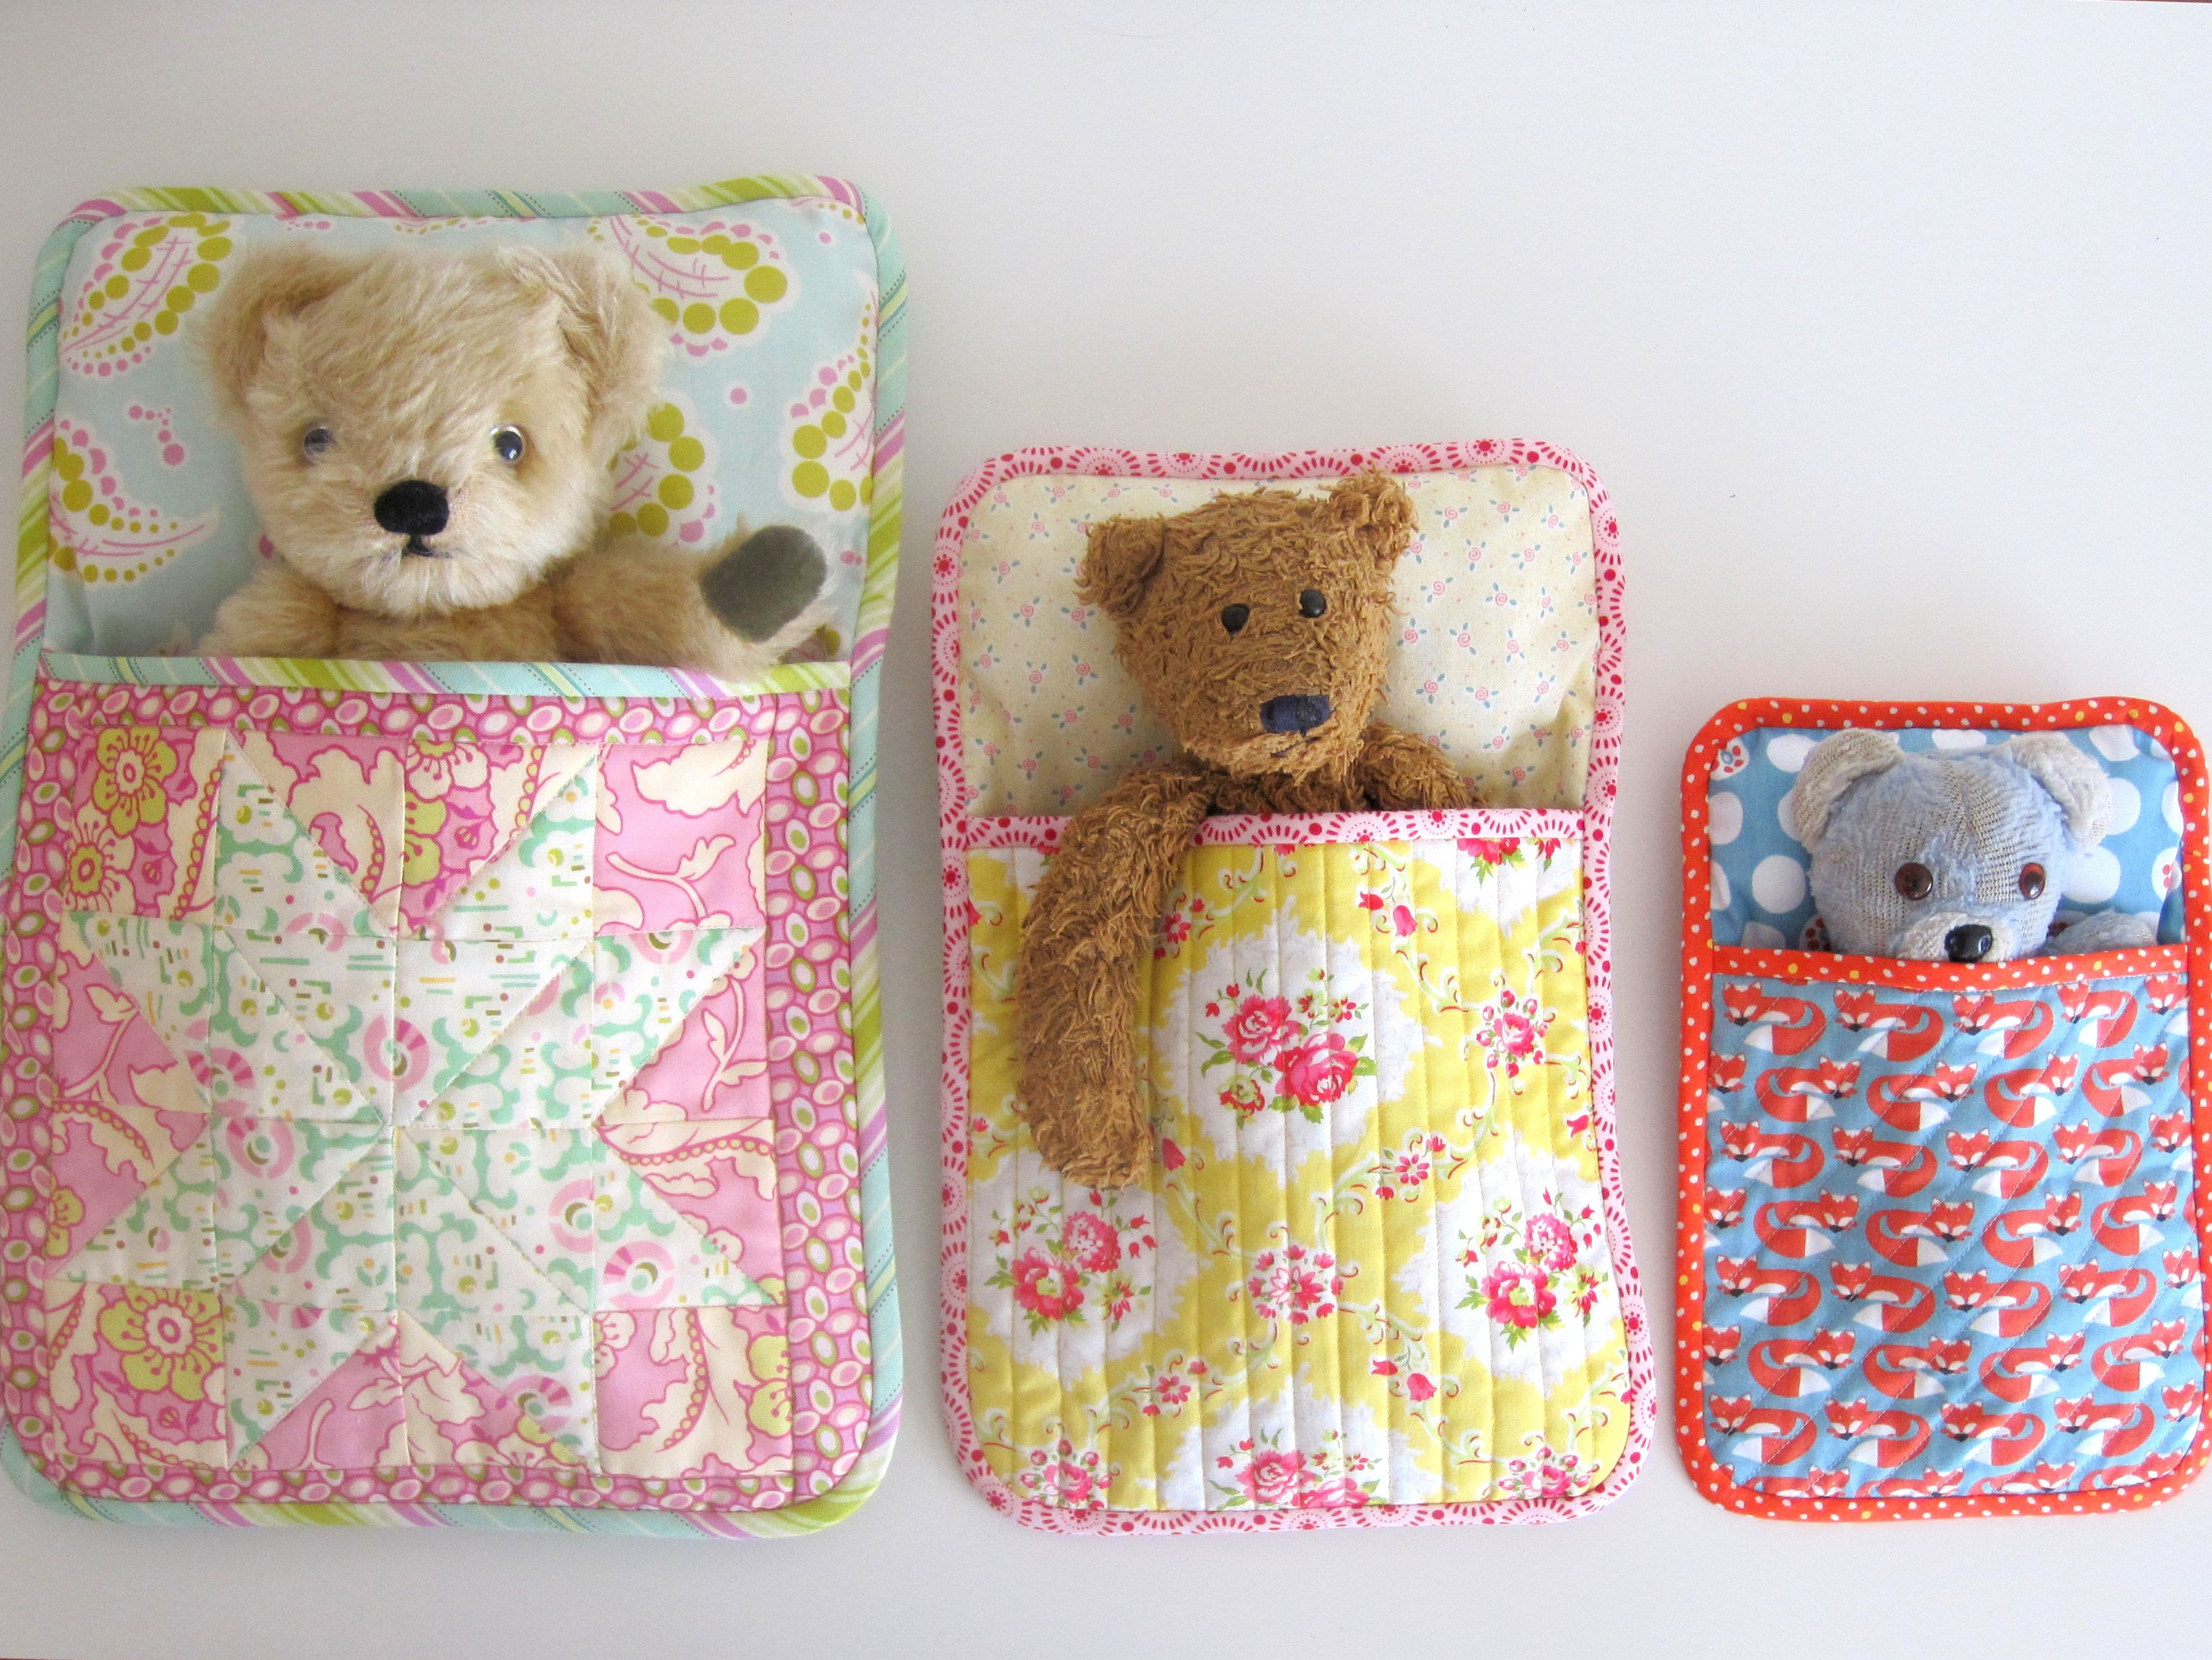 Or sleeping bags clothes pegs optional fairy lights optional - I M So Delighted That My Three Bears Sleeping Bag Pdf Pattern Is Finally